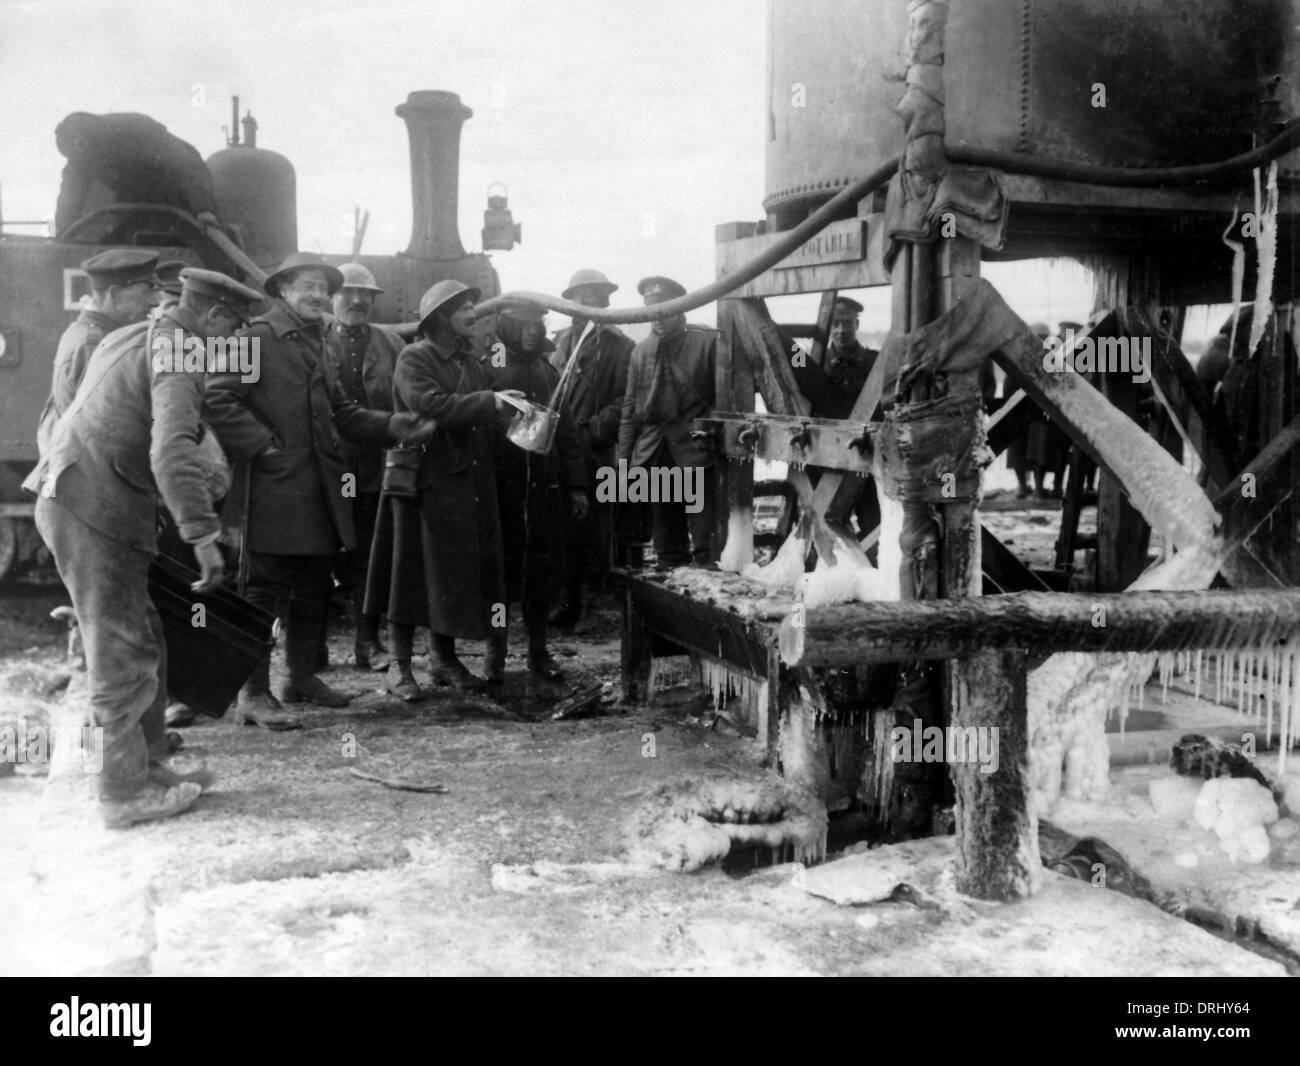 British soldiers taking in water, Western Front, WW1 - Stock Image